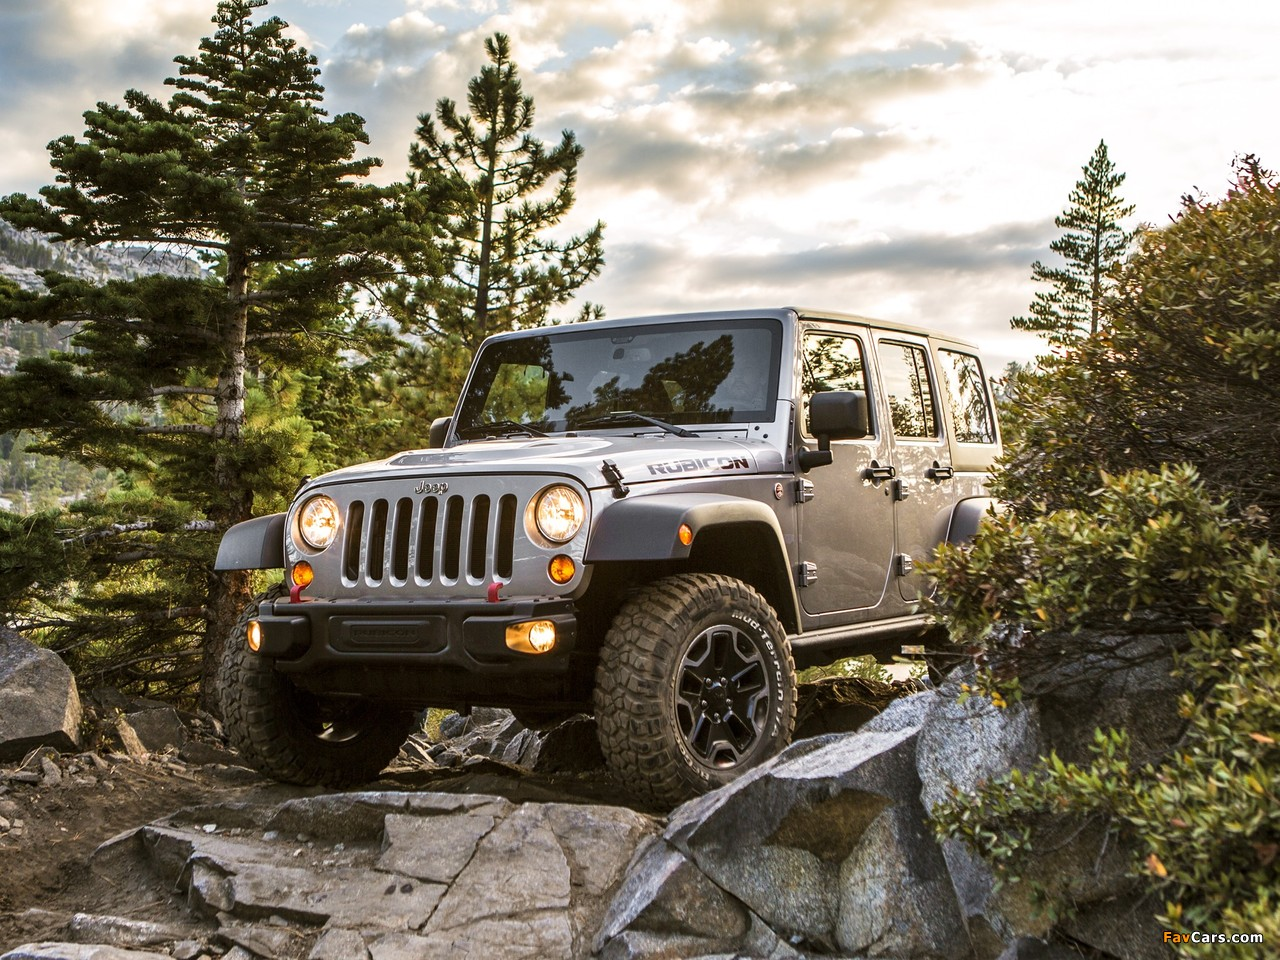 Jeep Wrangler Unlimited Rubicon 10th Anniversary (JK) 2013 images (1280 x 960)